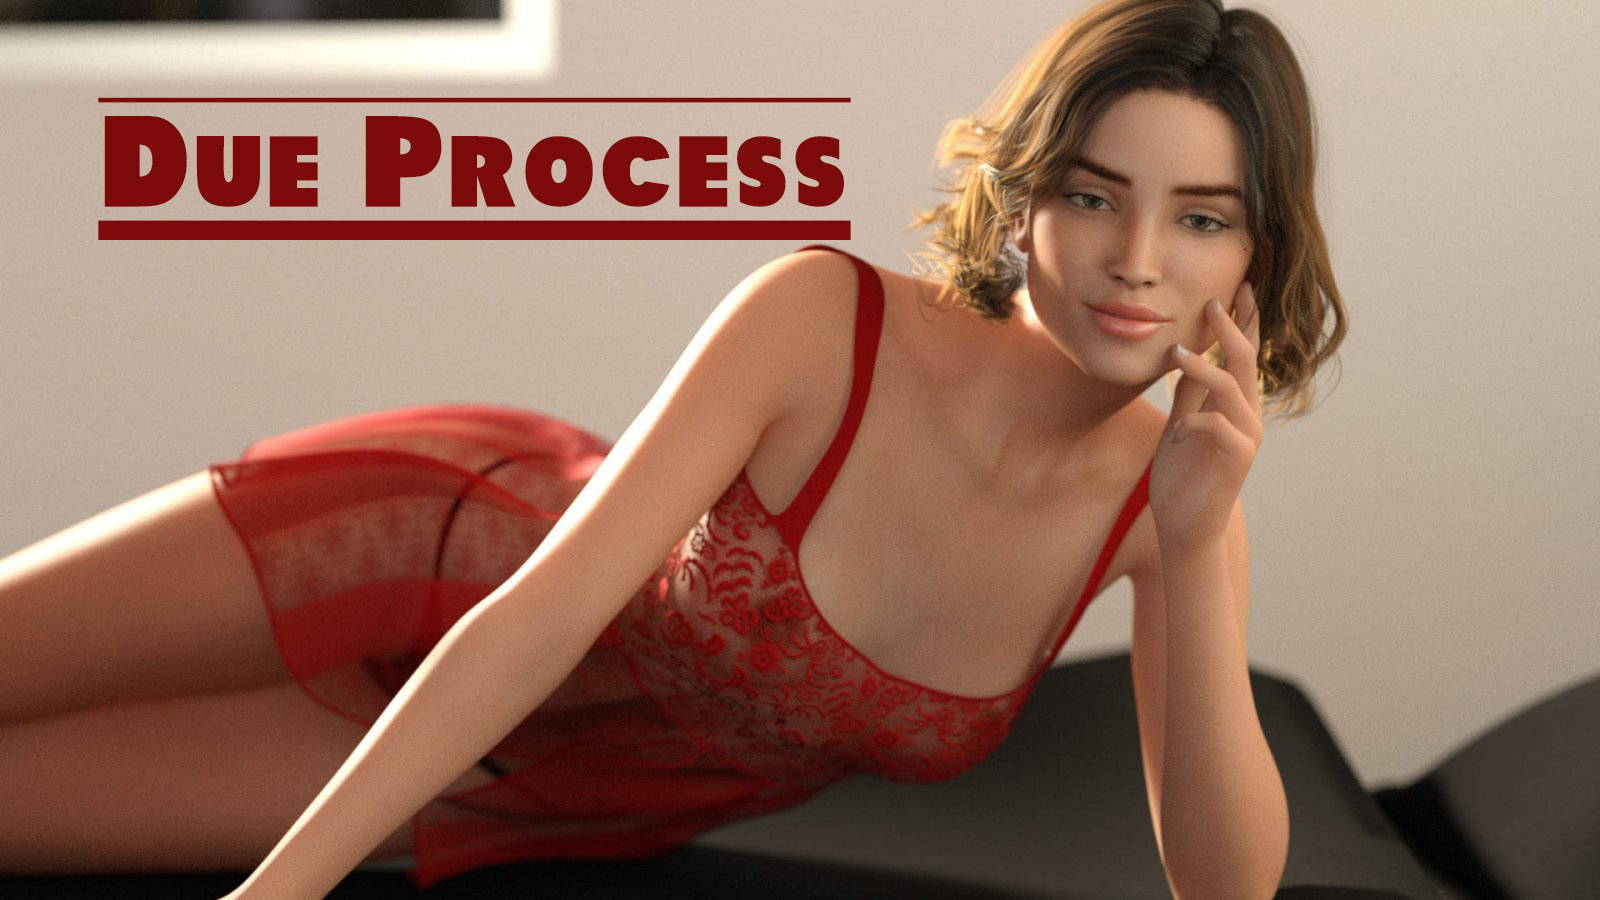 Due Process Adult Game Cover